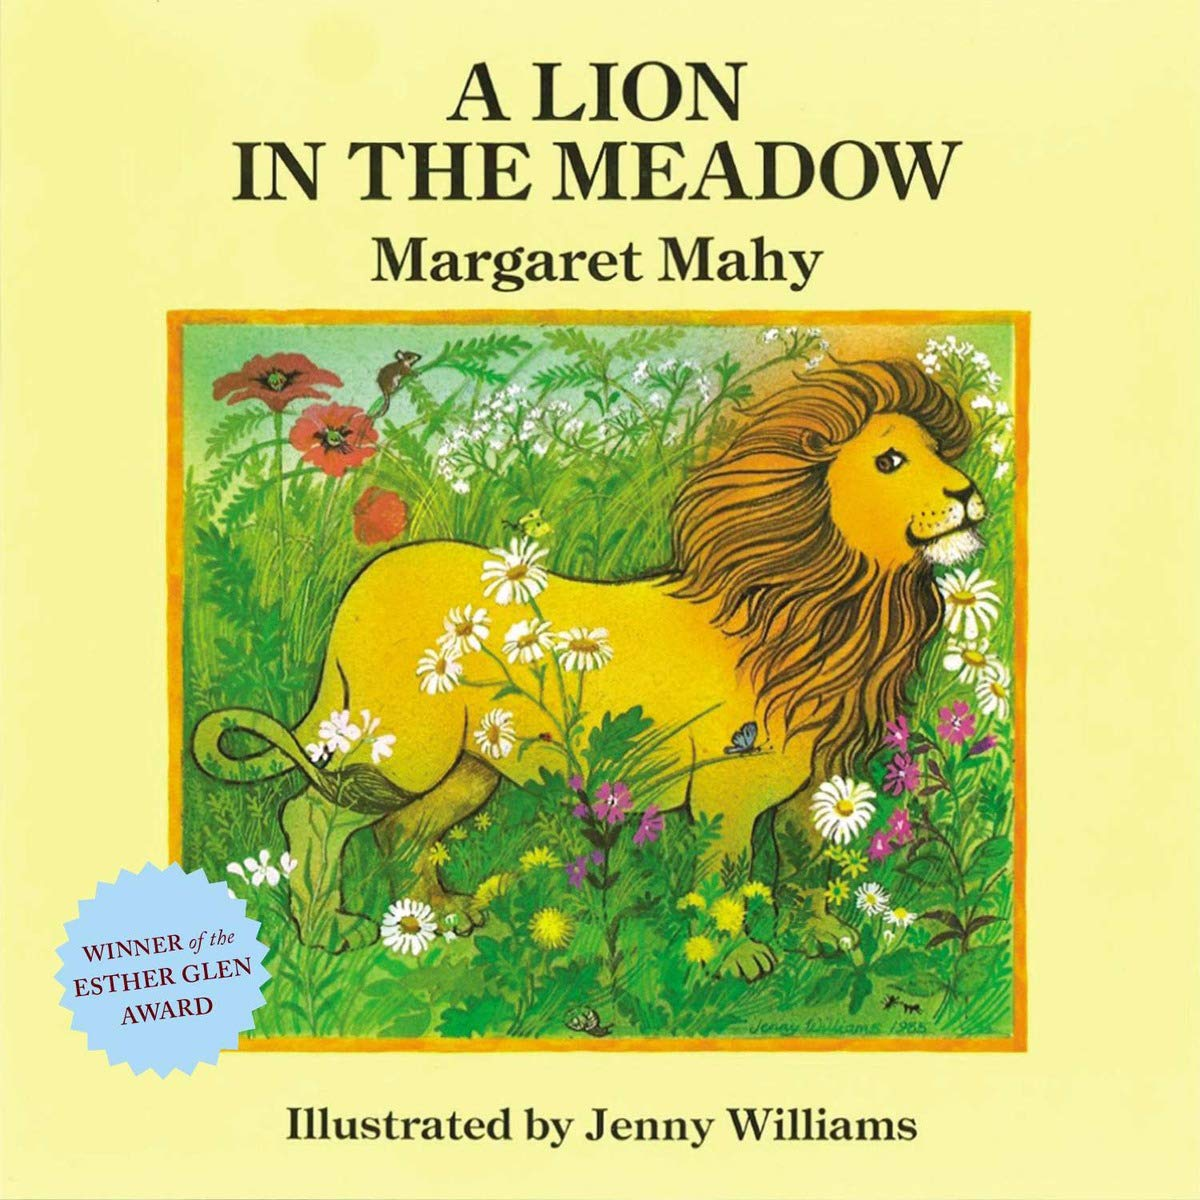 A Lion in the Meadow : Mahy, Margaret: Amazon.co.uk: Books